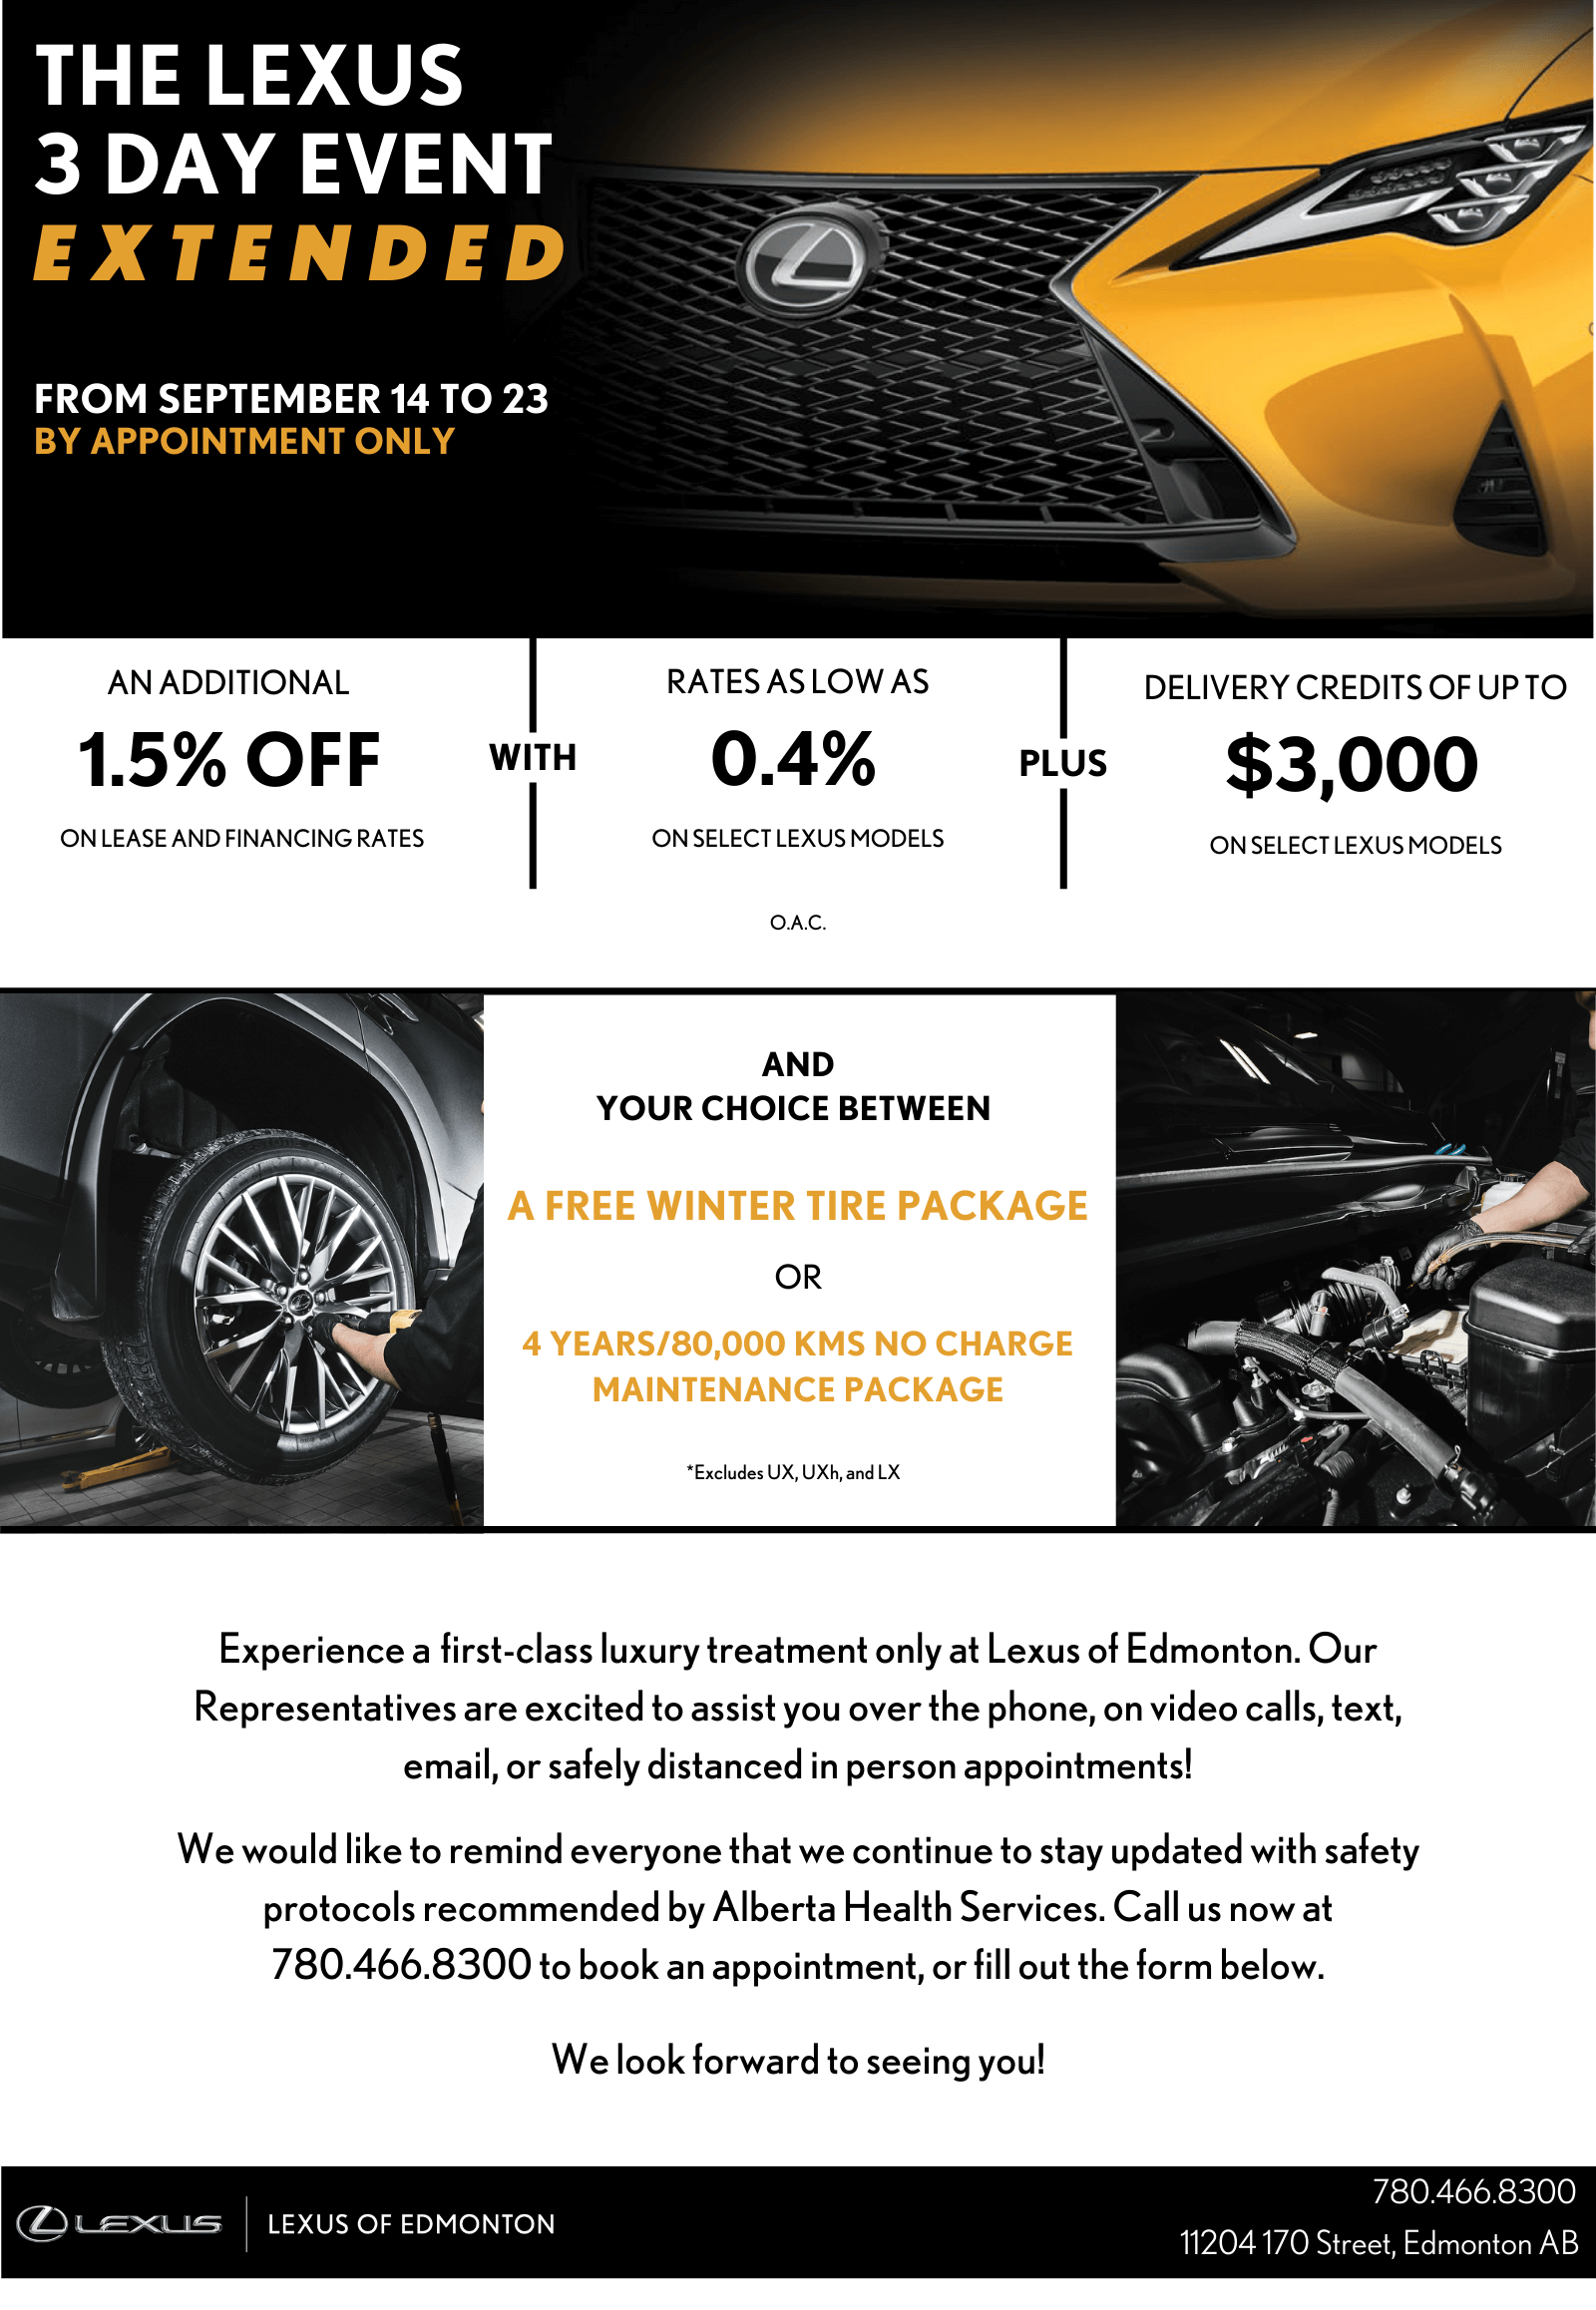 The Lexus 3 Day Event extended From September 14 to 23 By Appointment Only